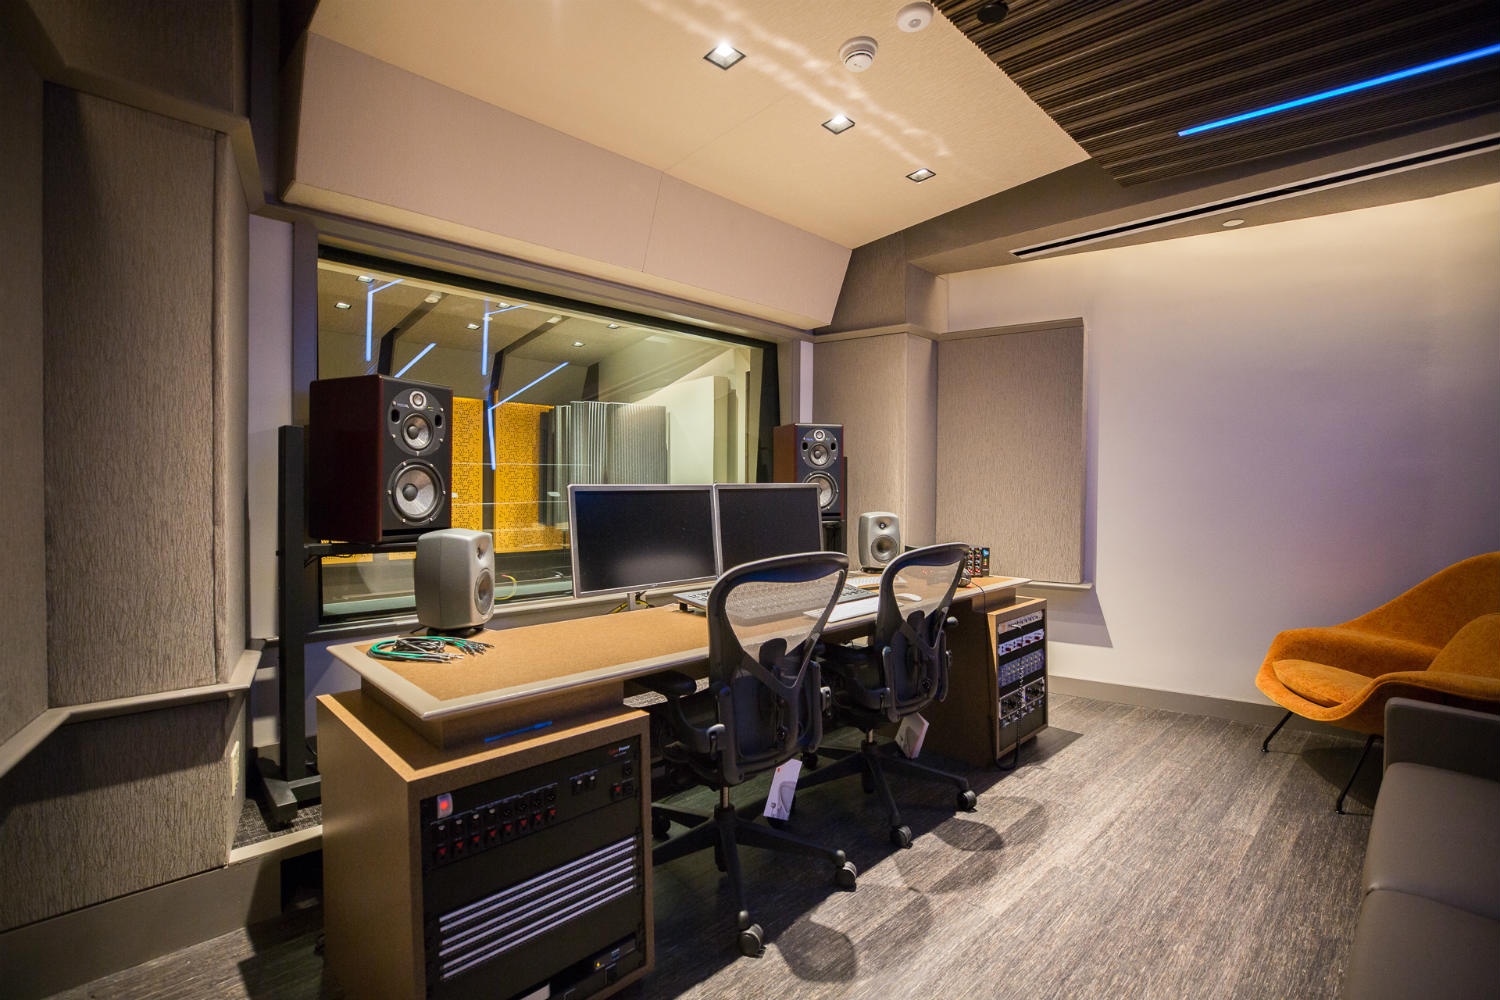 Audible is the world's largest producer/distributor of downloadable audiobooks and other spoken-word entertainment. WSDG was commissioned to design their new state-of-the-art recording studio complex. Control Room A side view